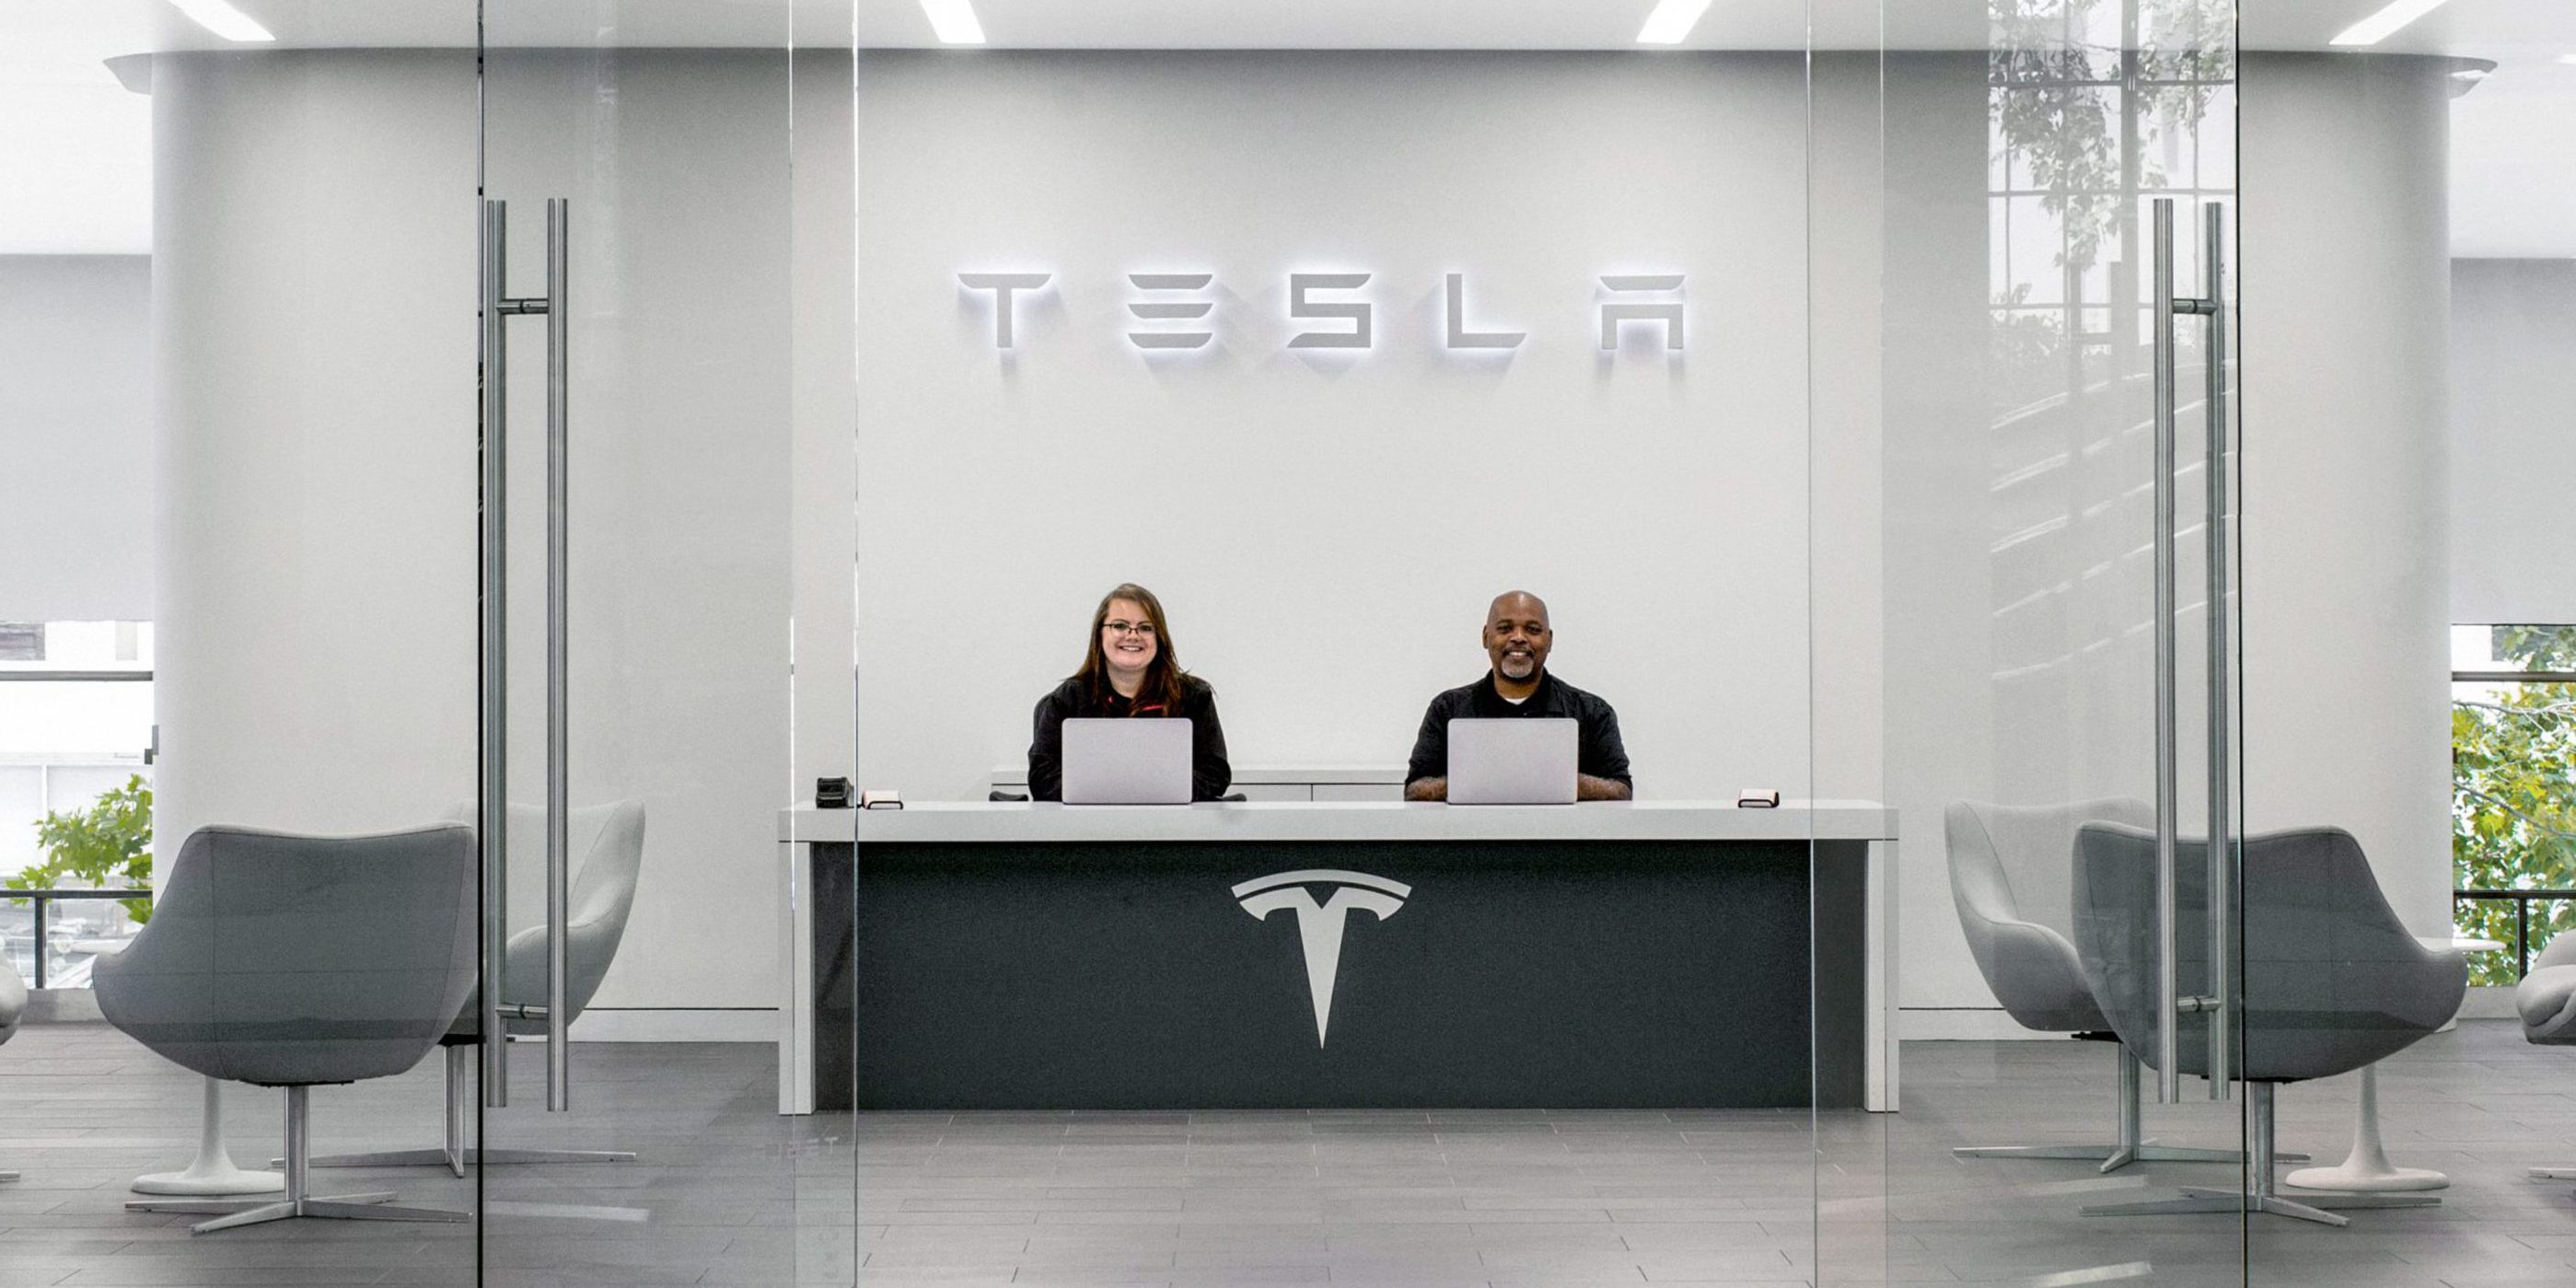 Tesla's hiring effort increases 33%, mostly for service and software - Electrek